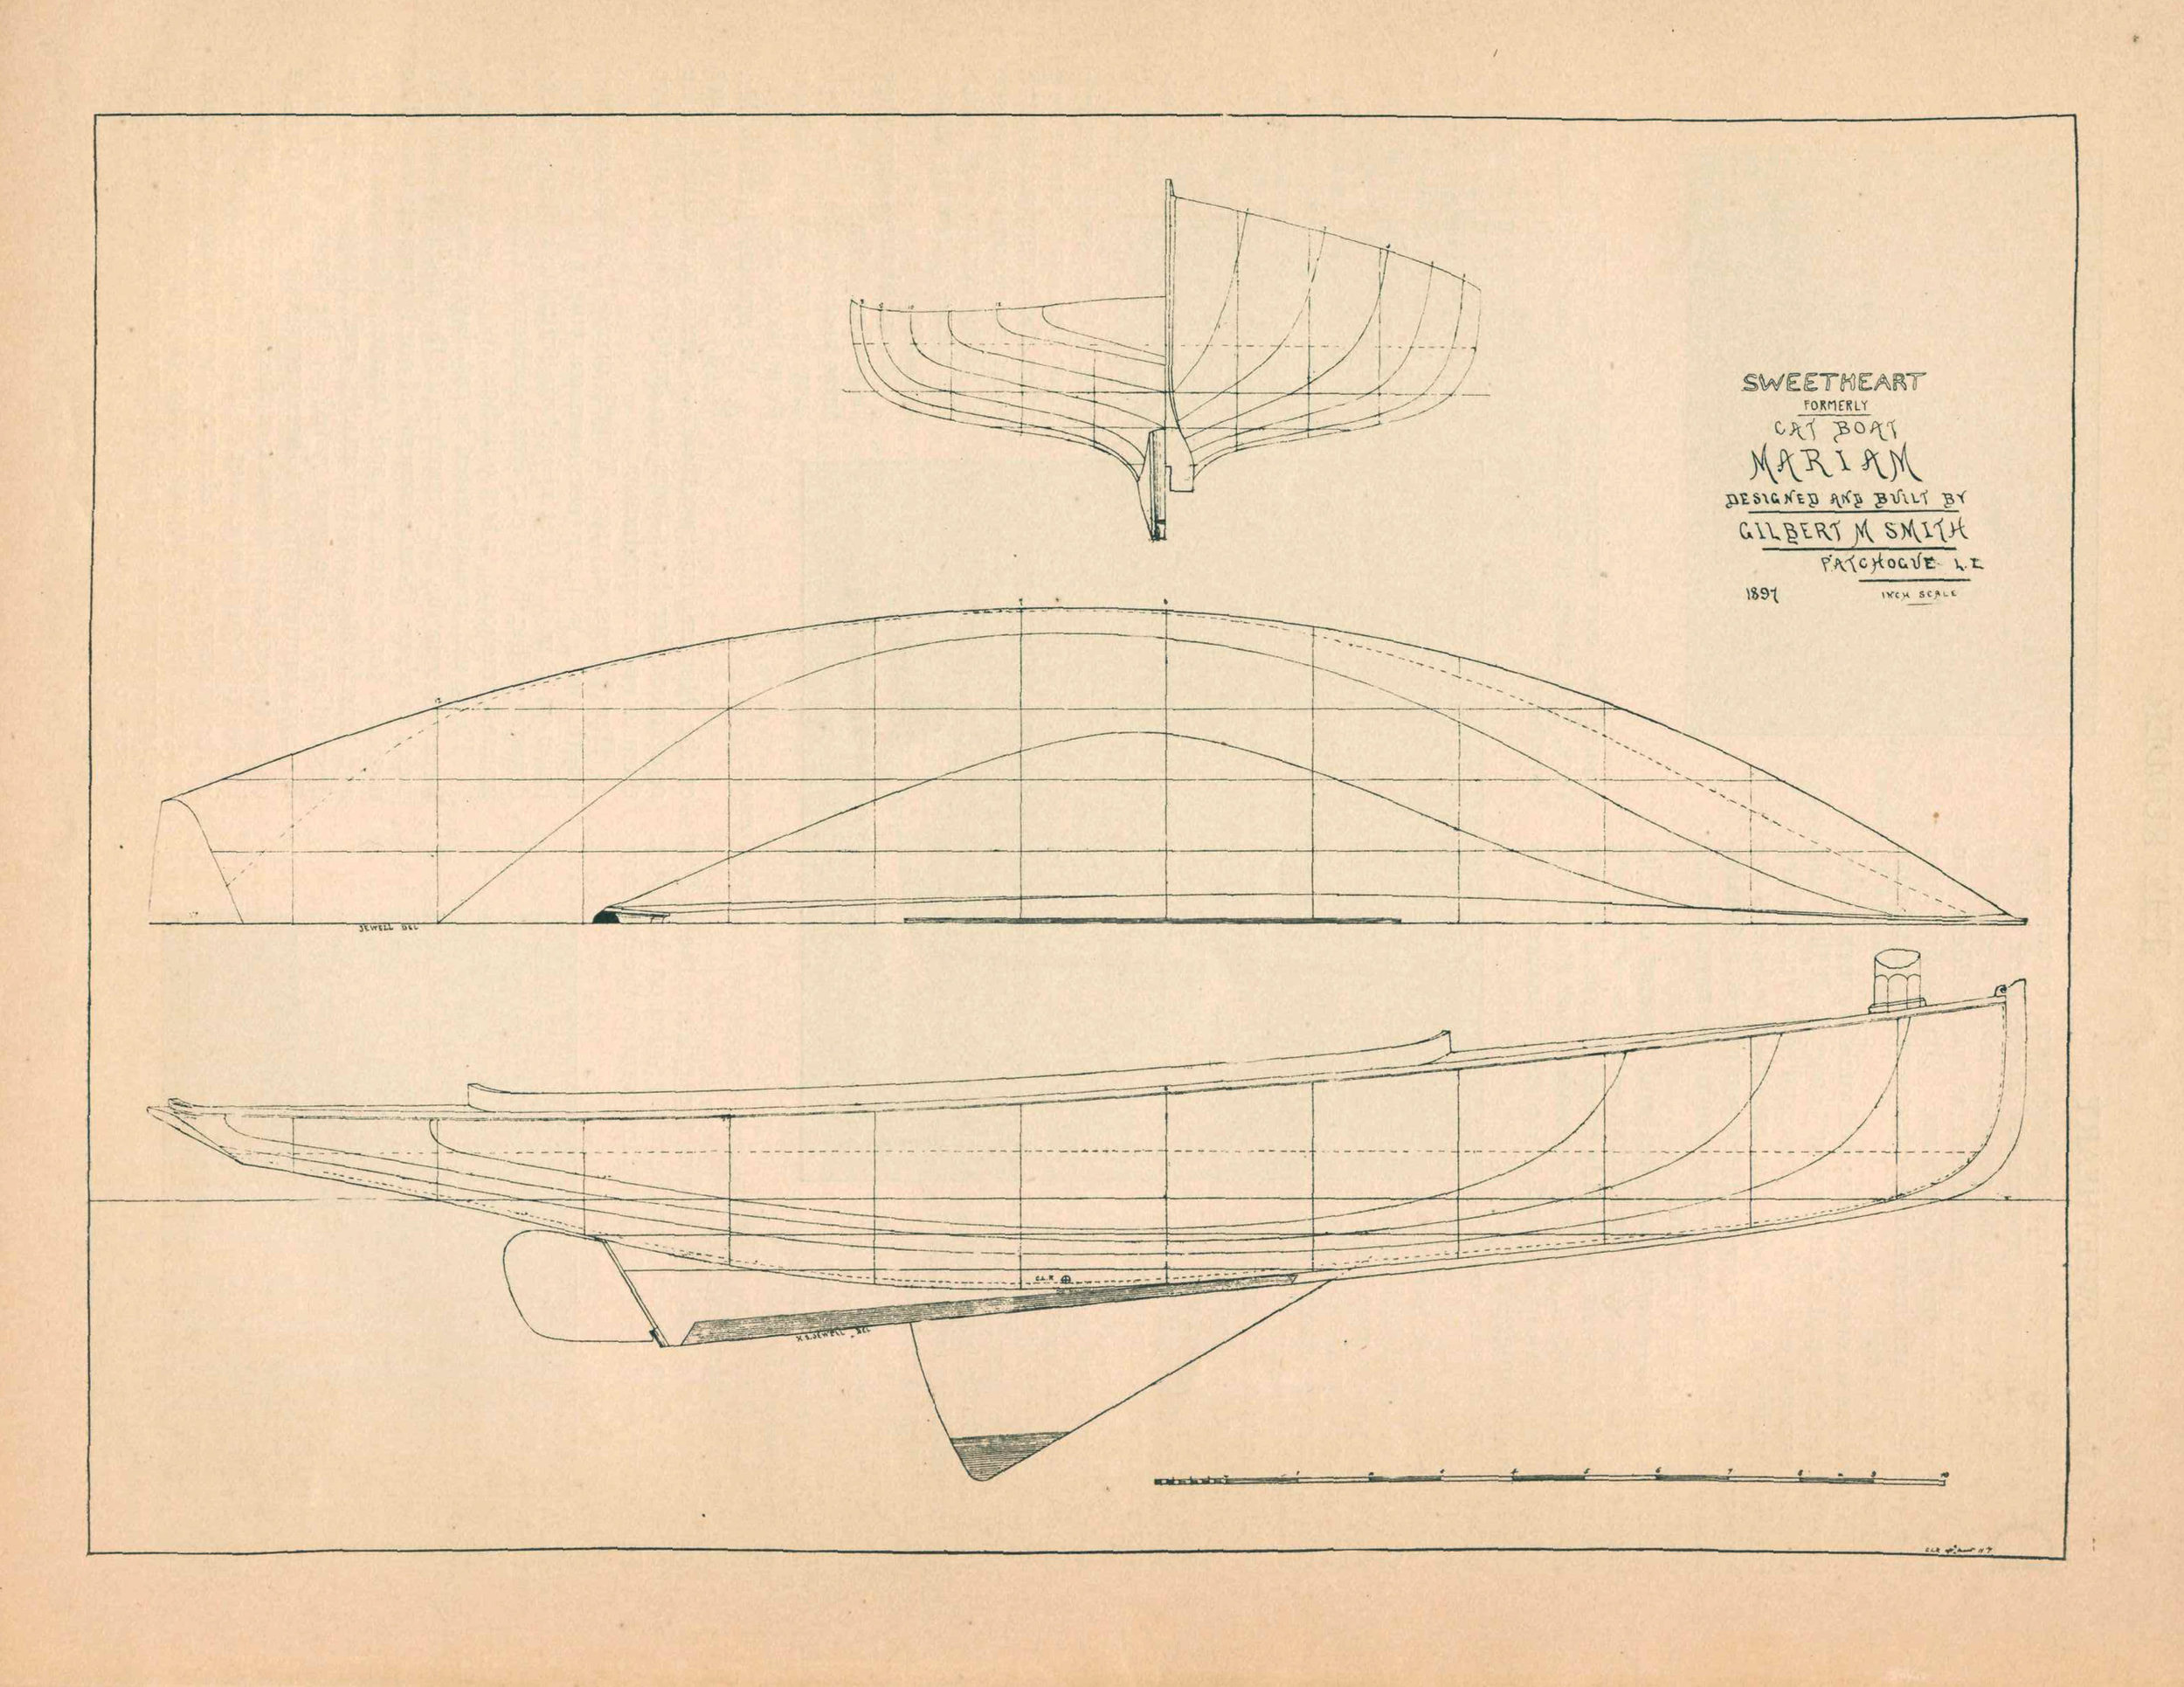 THE 1898 RUDDER MAGAZINE ARTICLE FEATURING GIL SMITH'S CATBOAT DESIGN FOR  SWEETHEART , FORMERLY  MARIAM